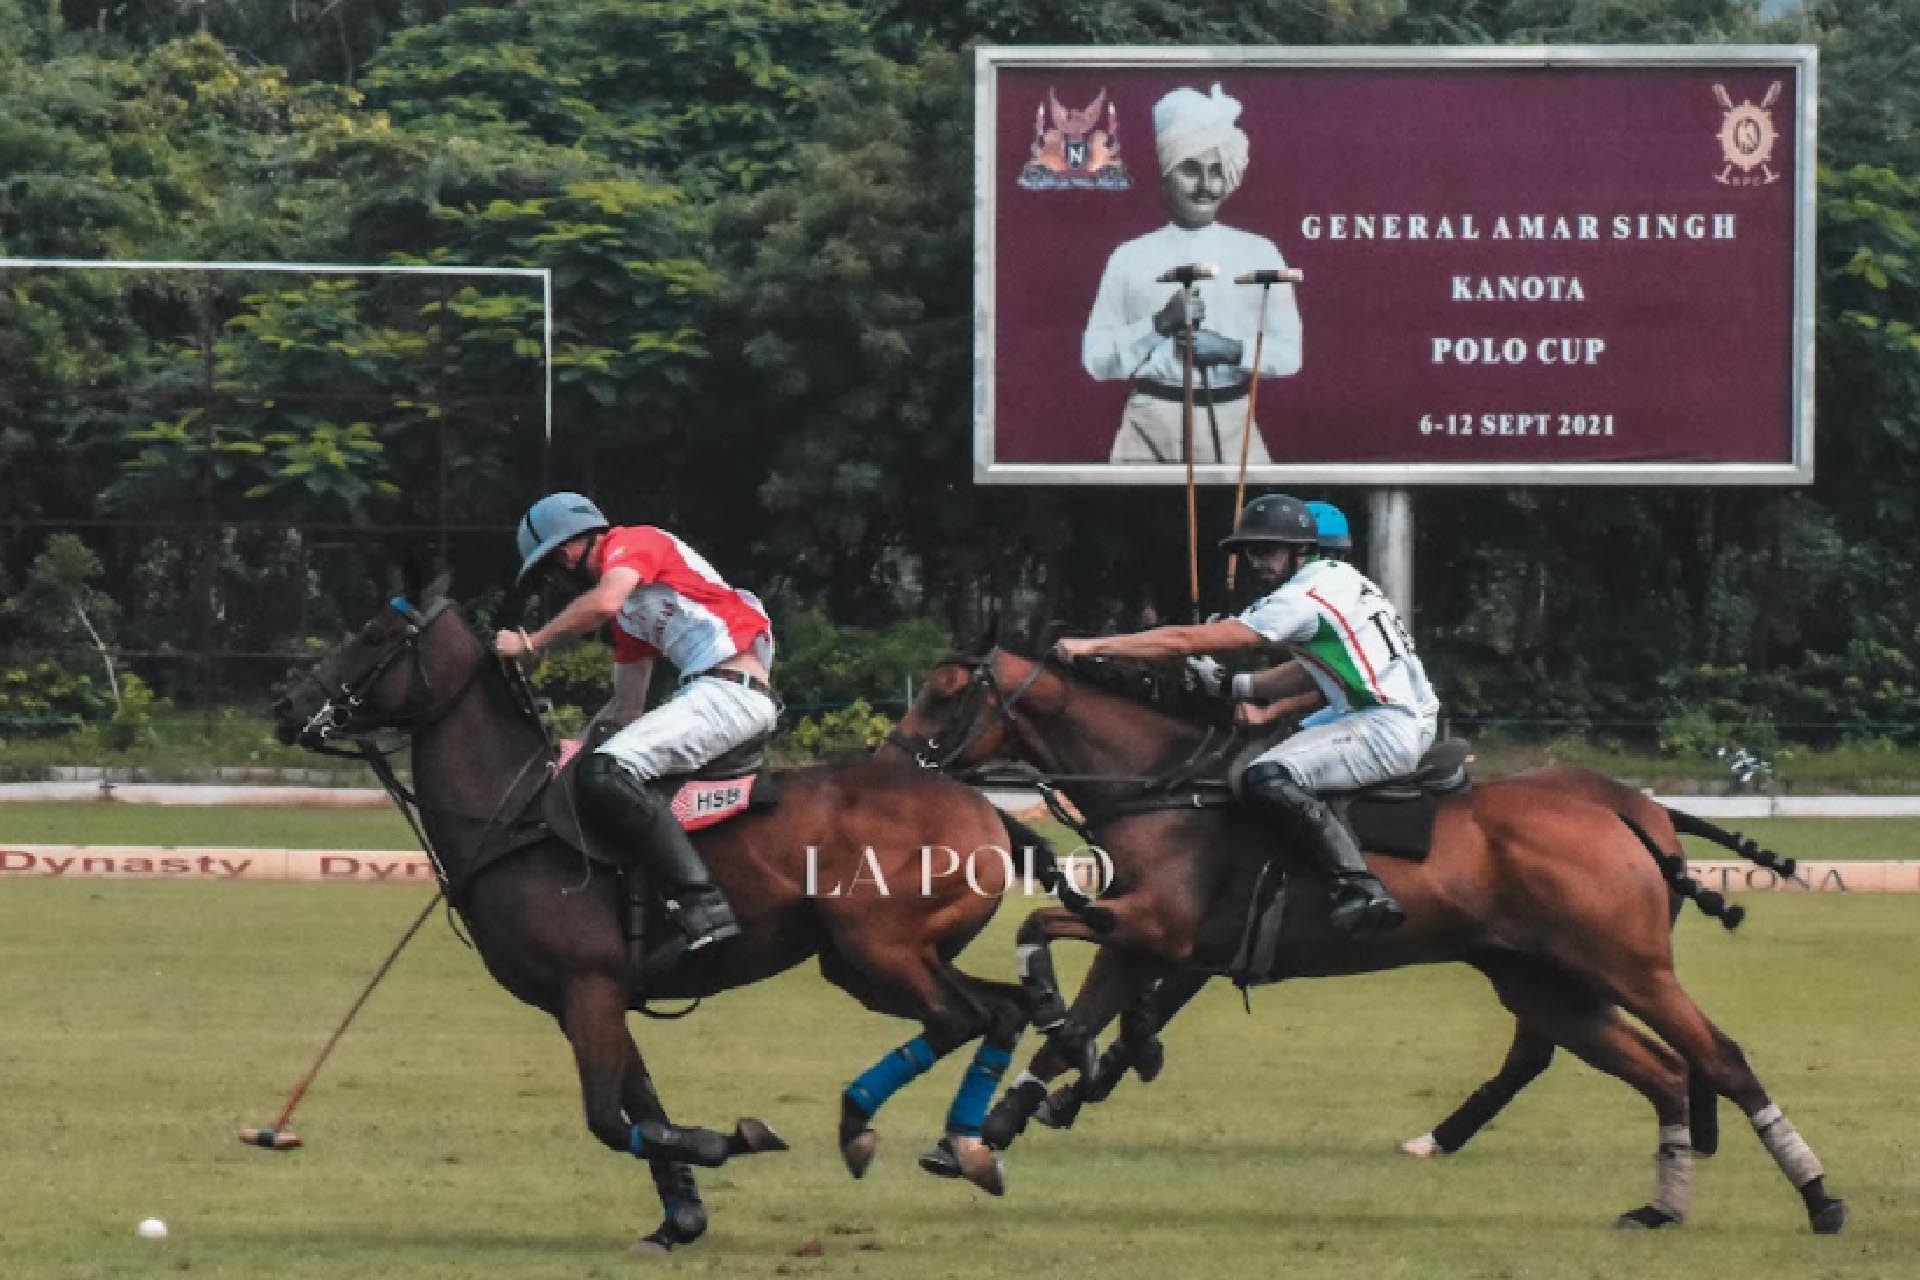 Rains, Penalty Shots and A Lot of Action At Gen Amar Singh Kanota Cup